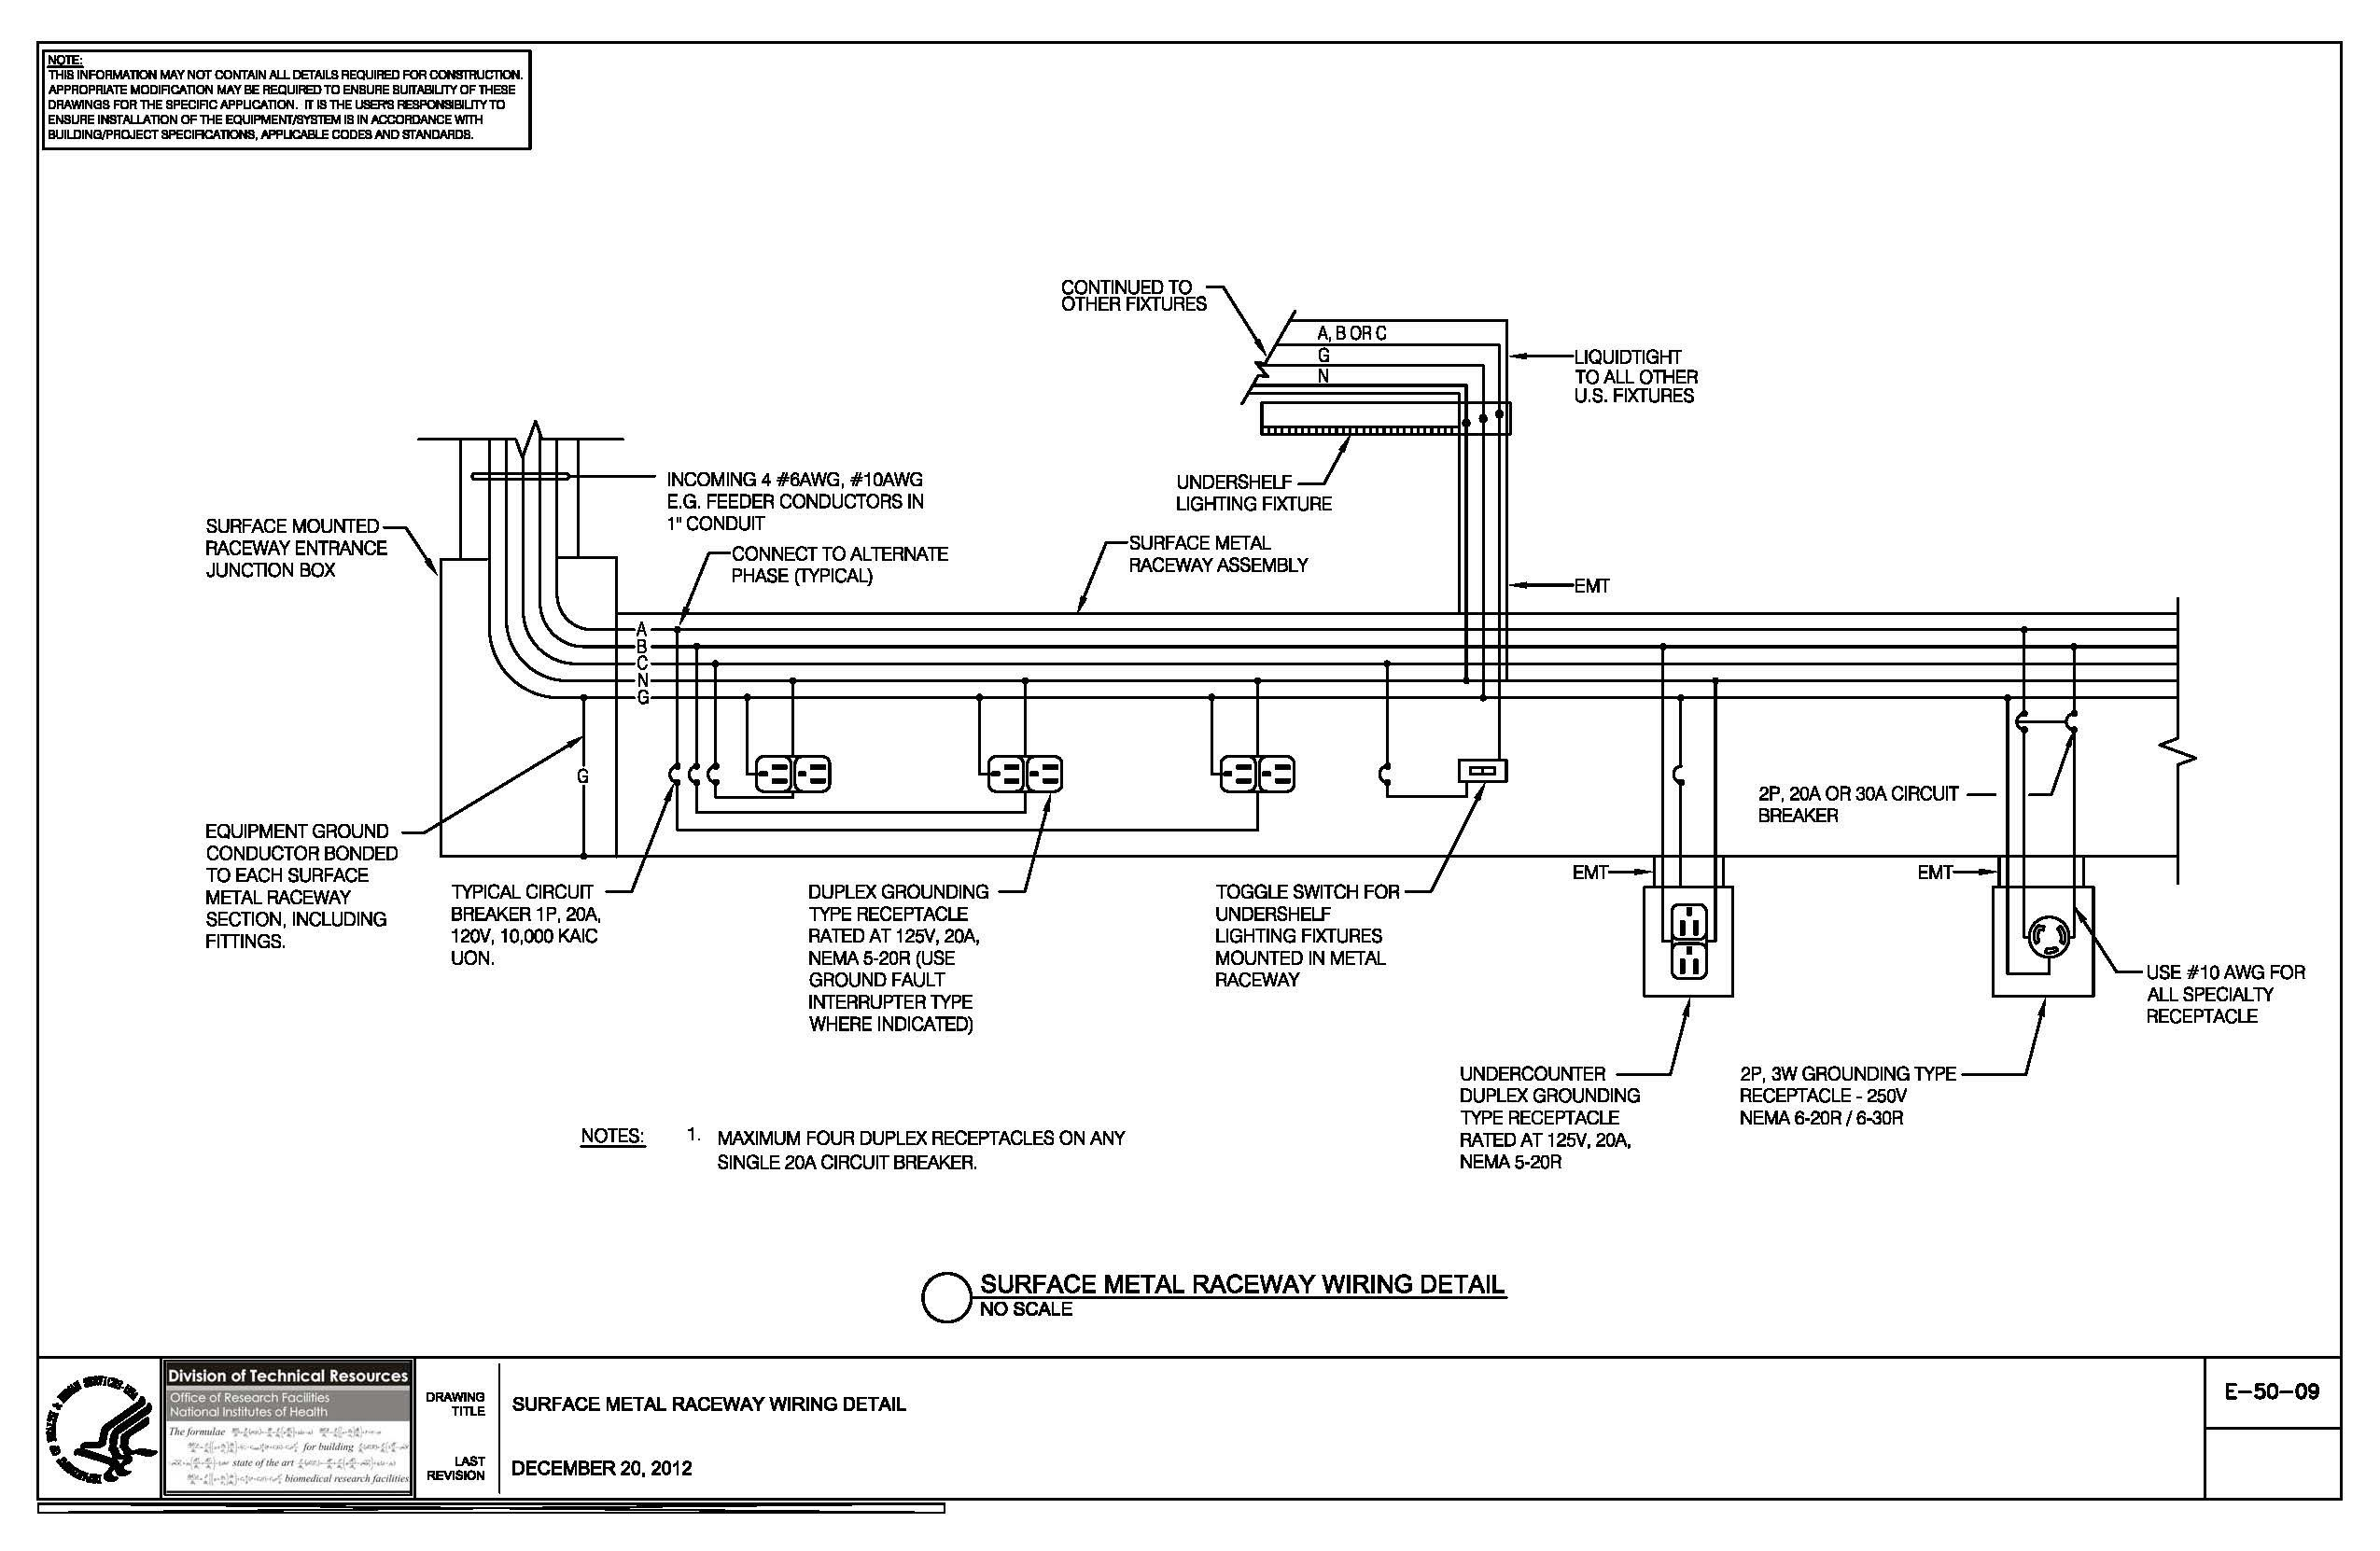 swimming pool electrical wiring diagram fender super switch sample